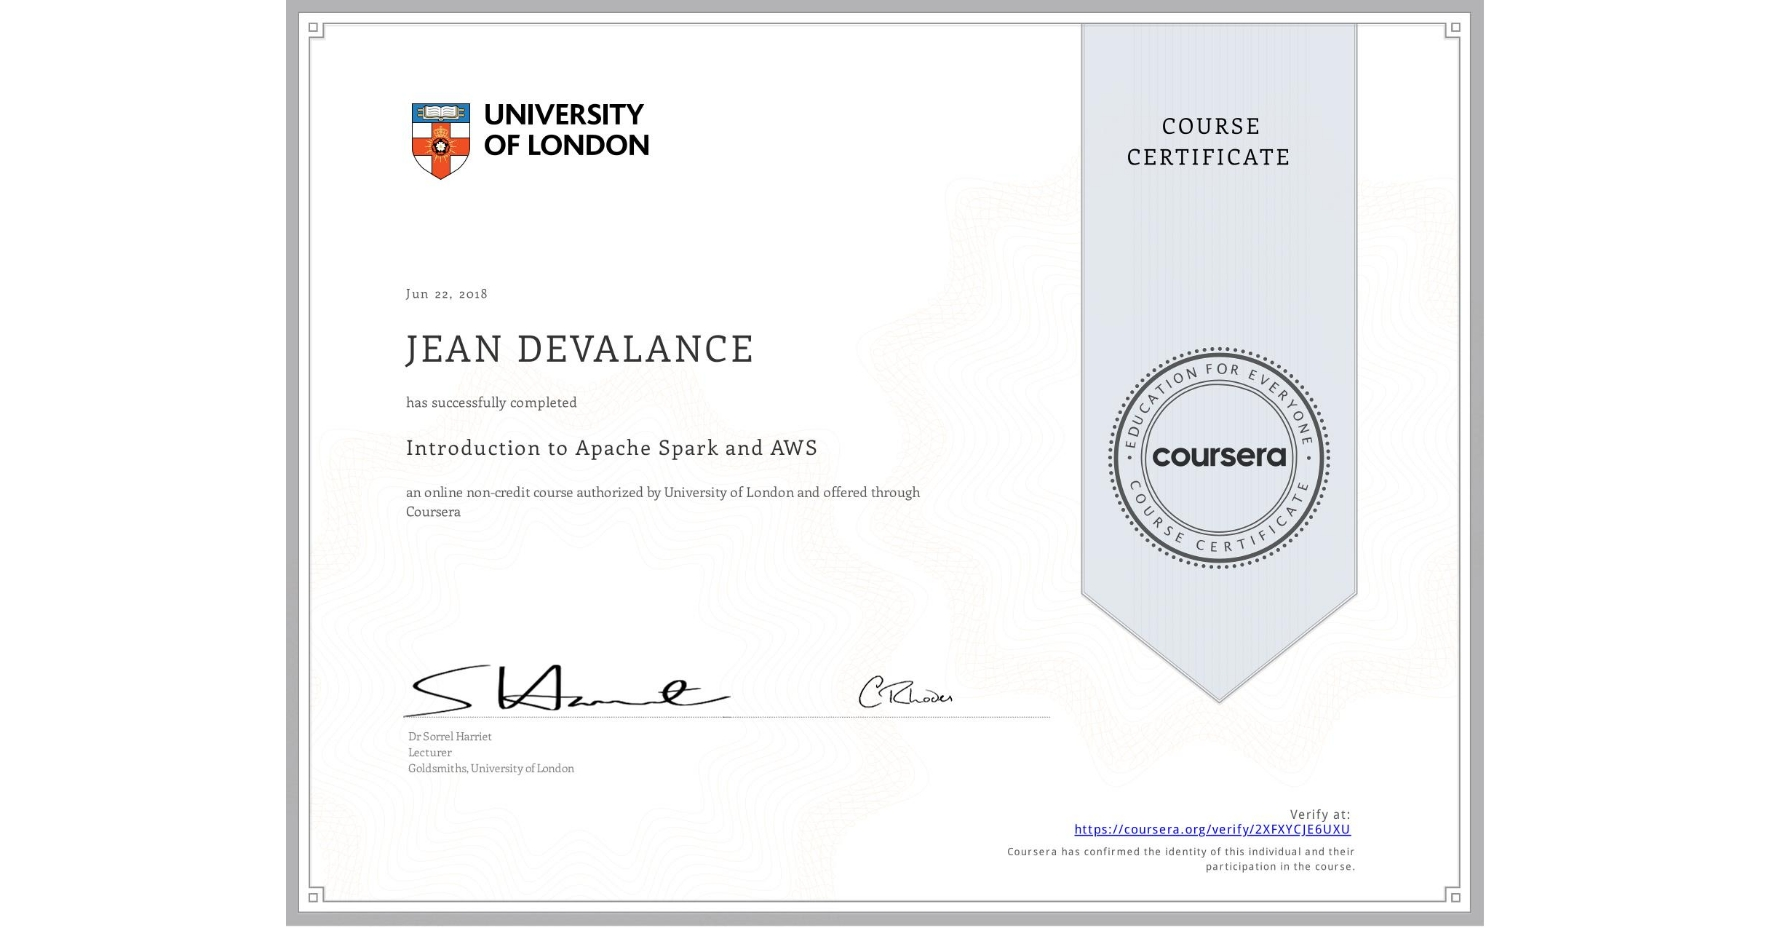 View certificate for JEAN DEVALANCE, Introduction to Apache Spark and AWS, an online non-credit course authorized by University of London and offered through Coursera